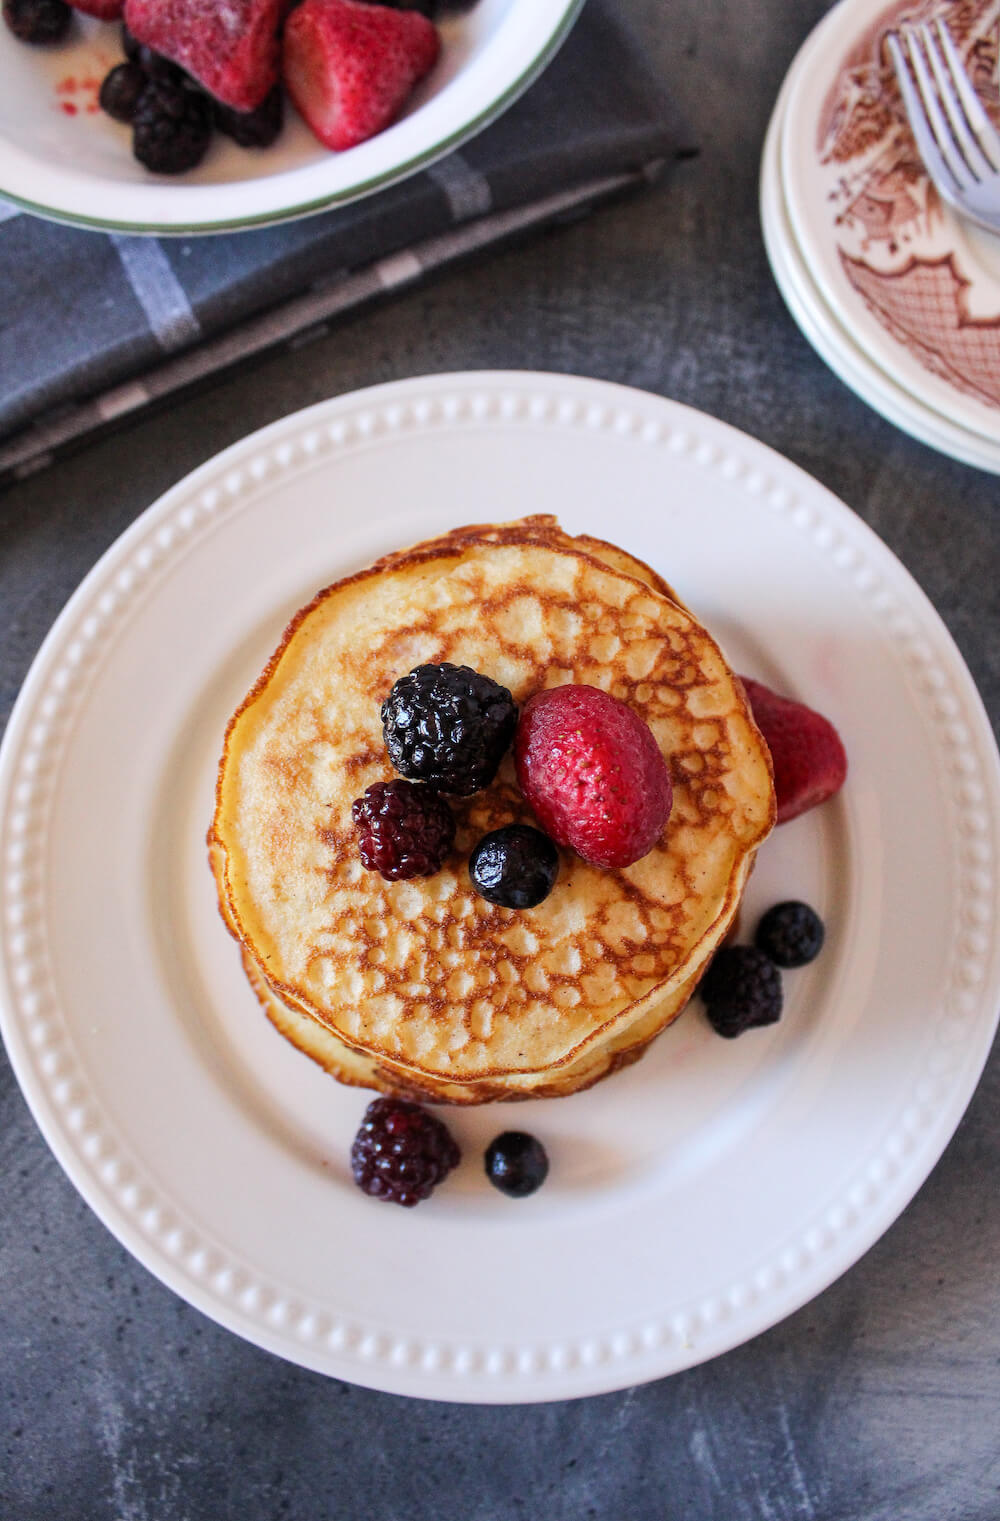 Keto Almond Flour Pancakes make a delicious low carb breakfast